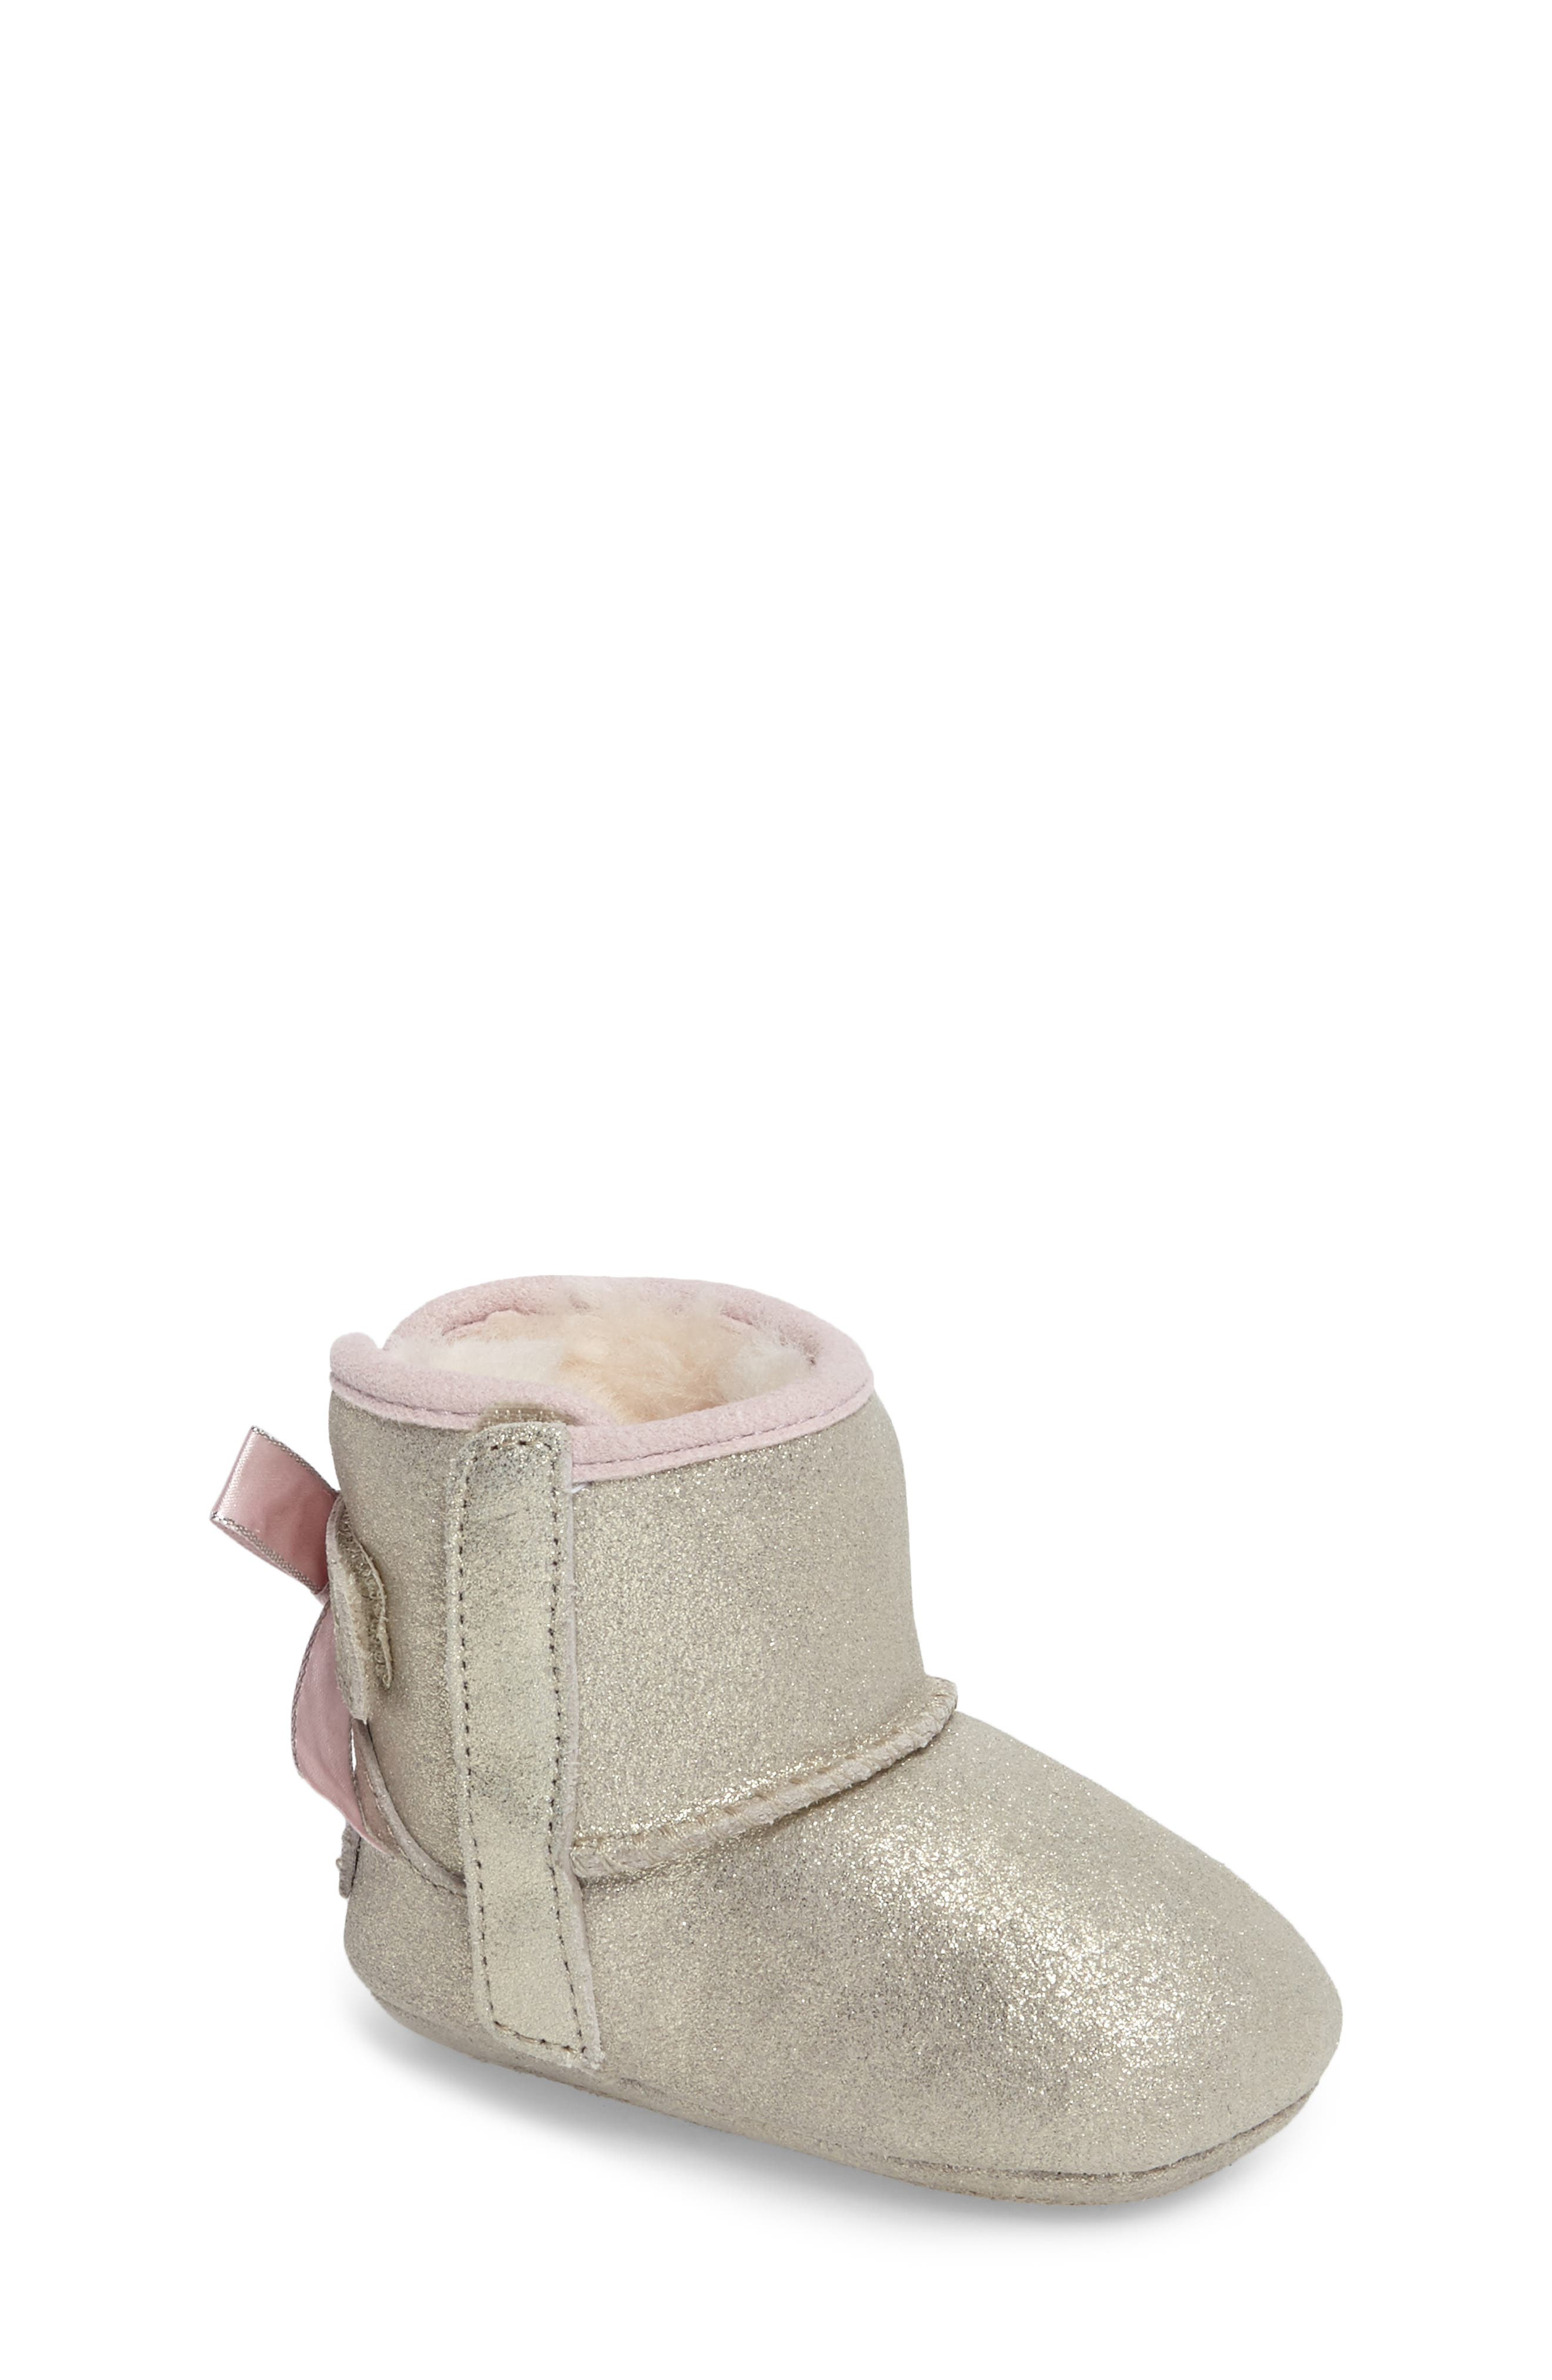 Jesse Bow II Metallic Bootie,                             Main thumbnail 1, color,                             Gold